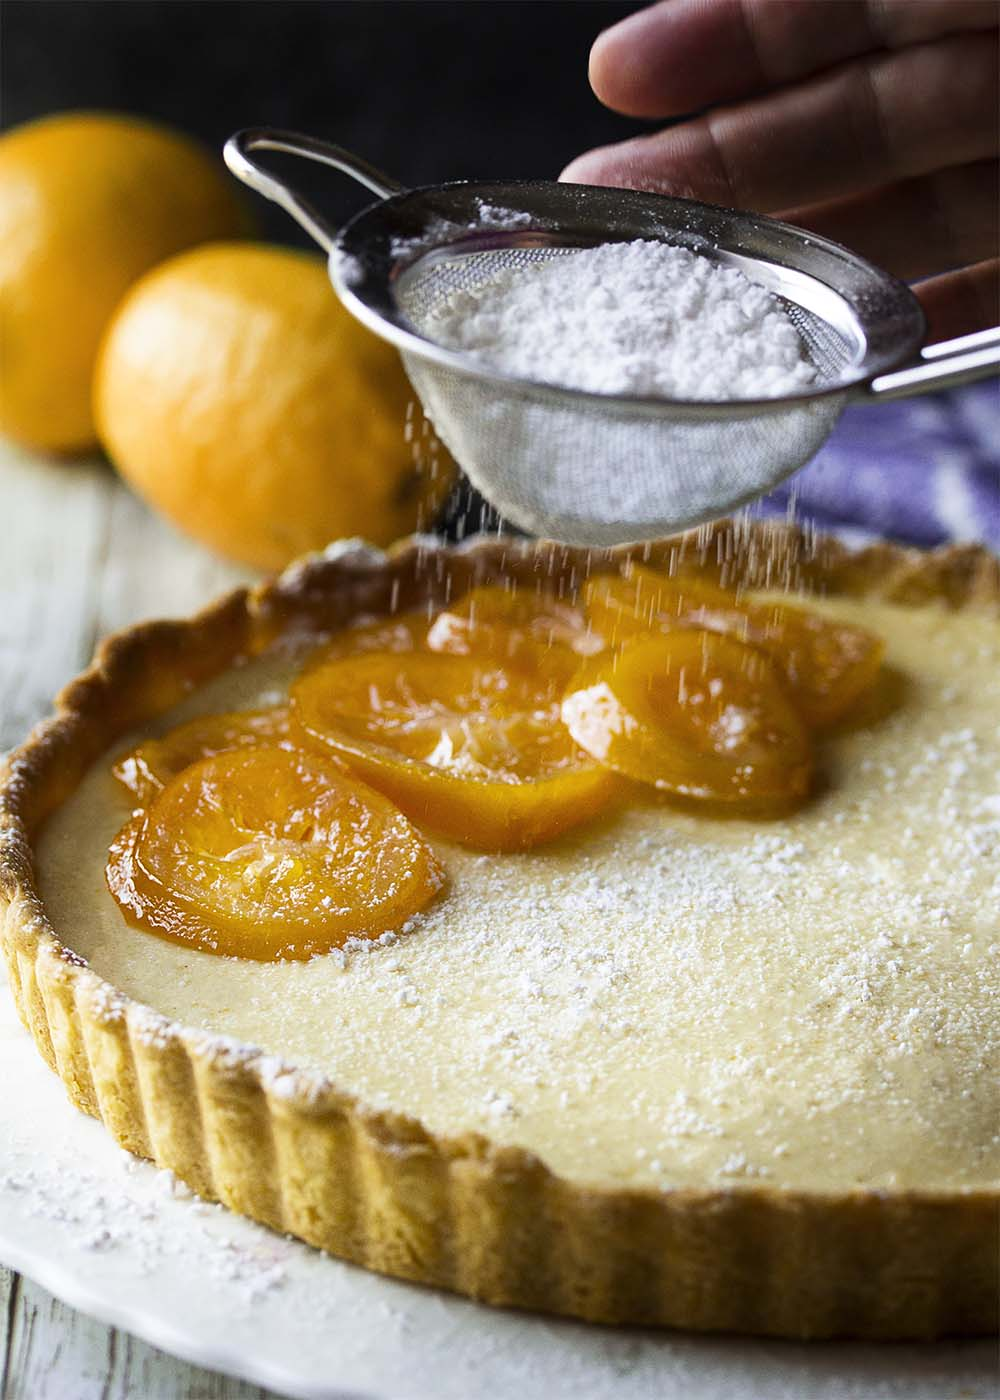 A hand shaking powdered sugar onto the top of an Italian lemon ricotta pie. Pie decorated with candied lemon slices. Whole lemons in the background.